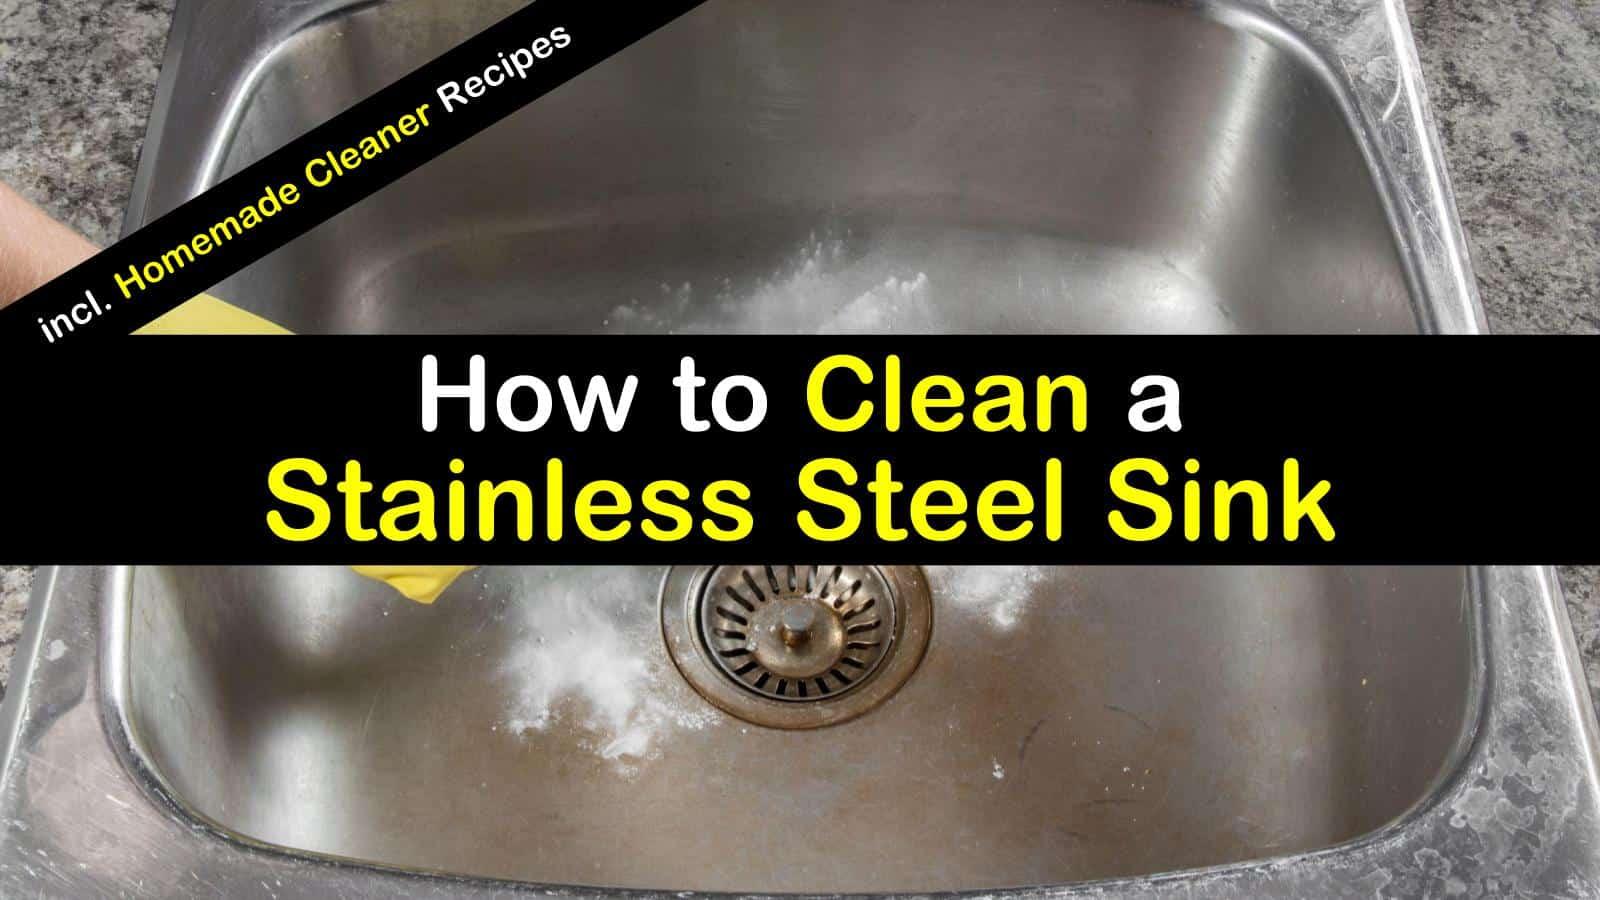 to clean a stainless steel sink